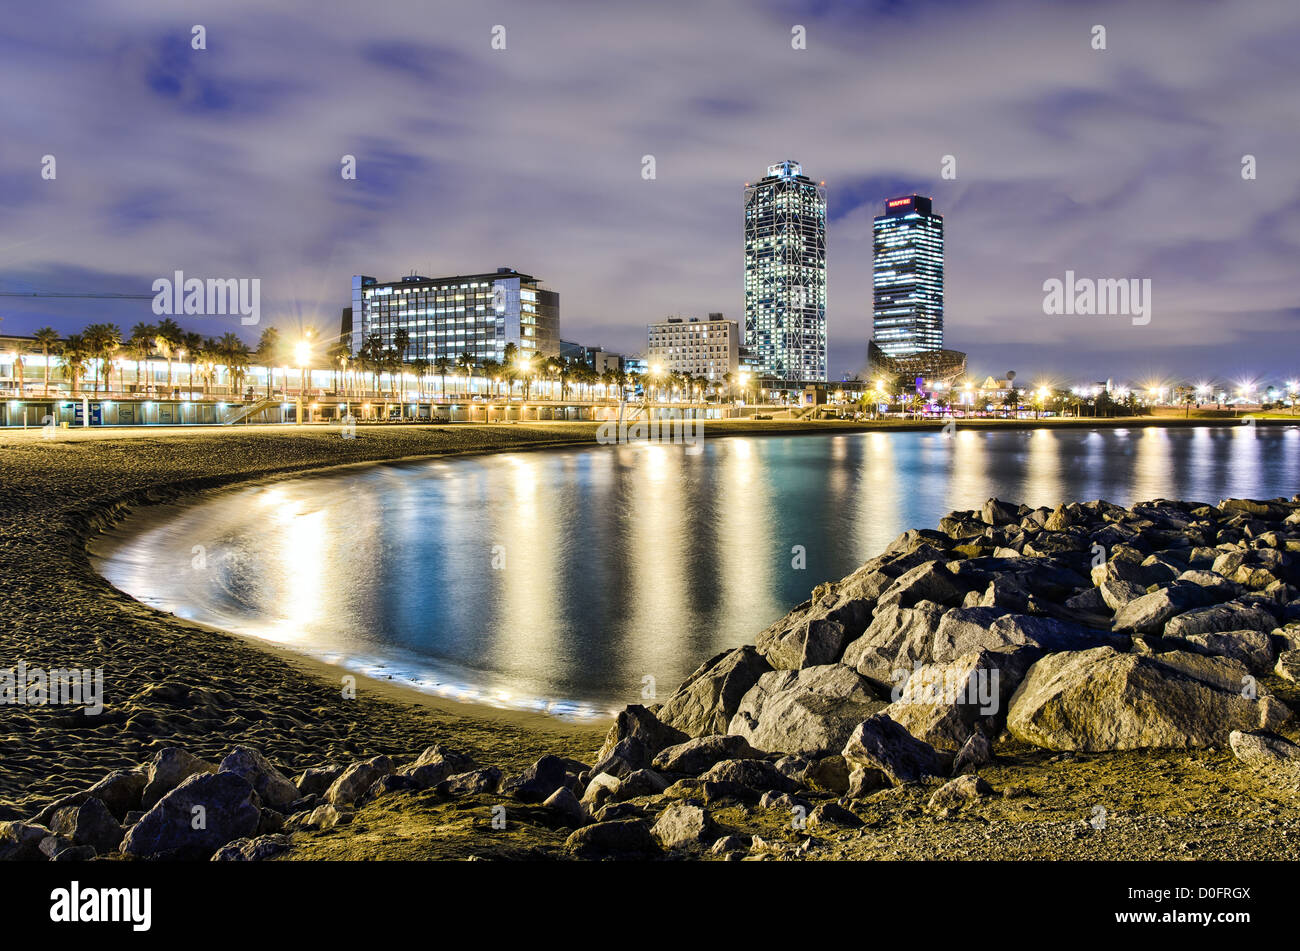 Coastline of Barcelona at night  with a view of hotel towers, Spain - Stock Image